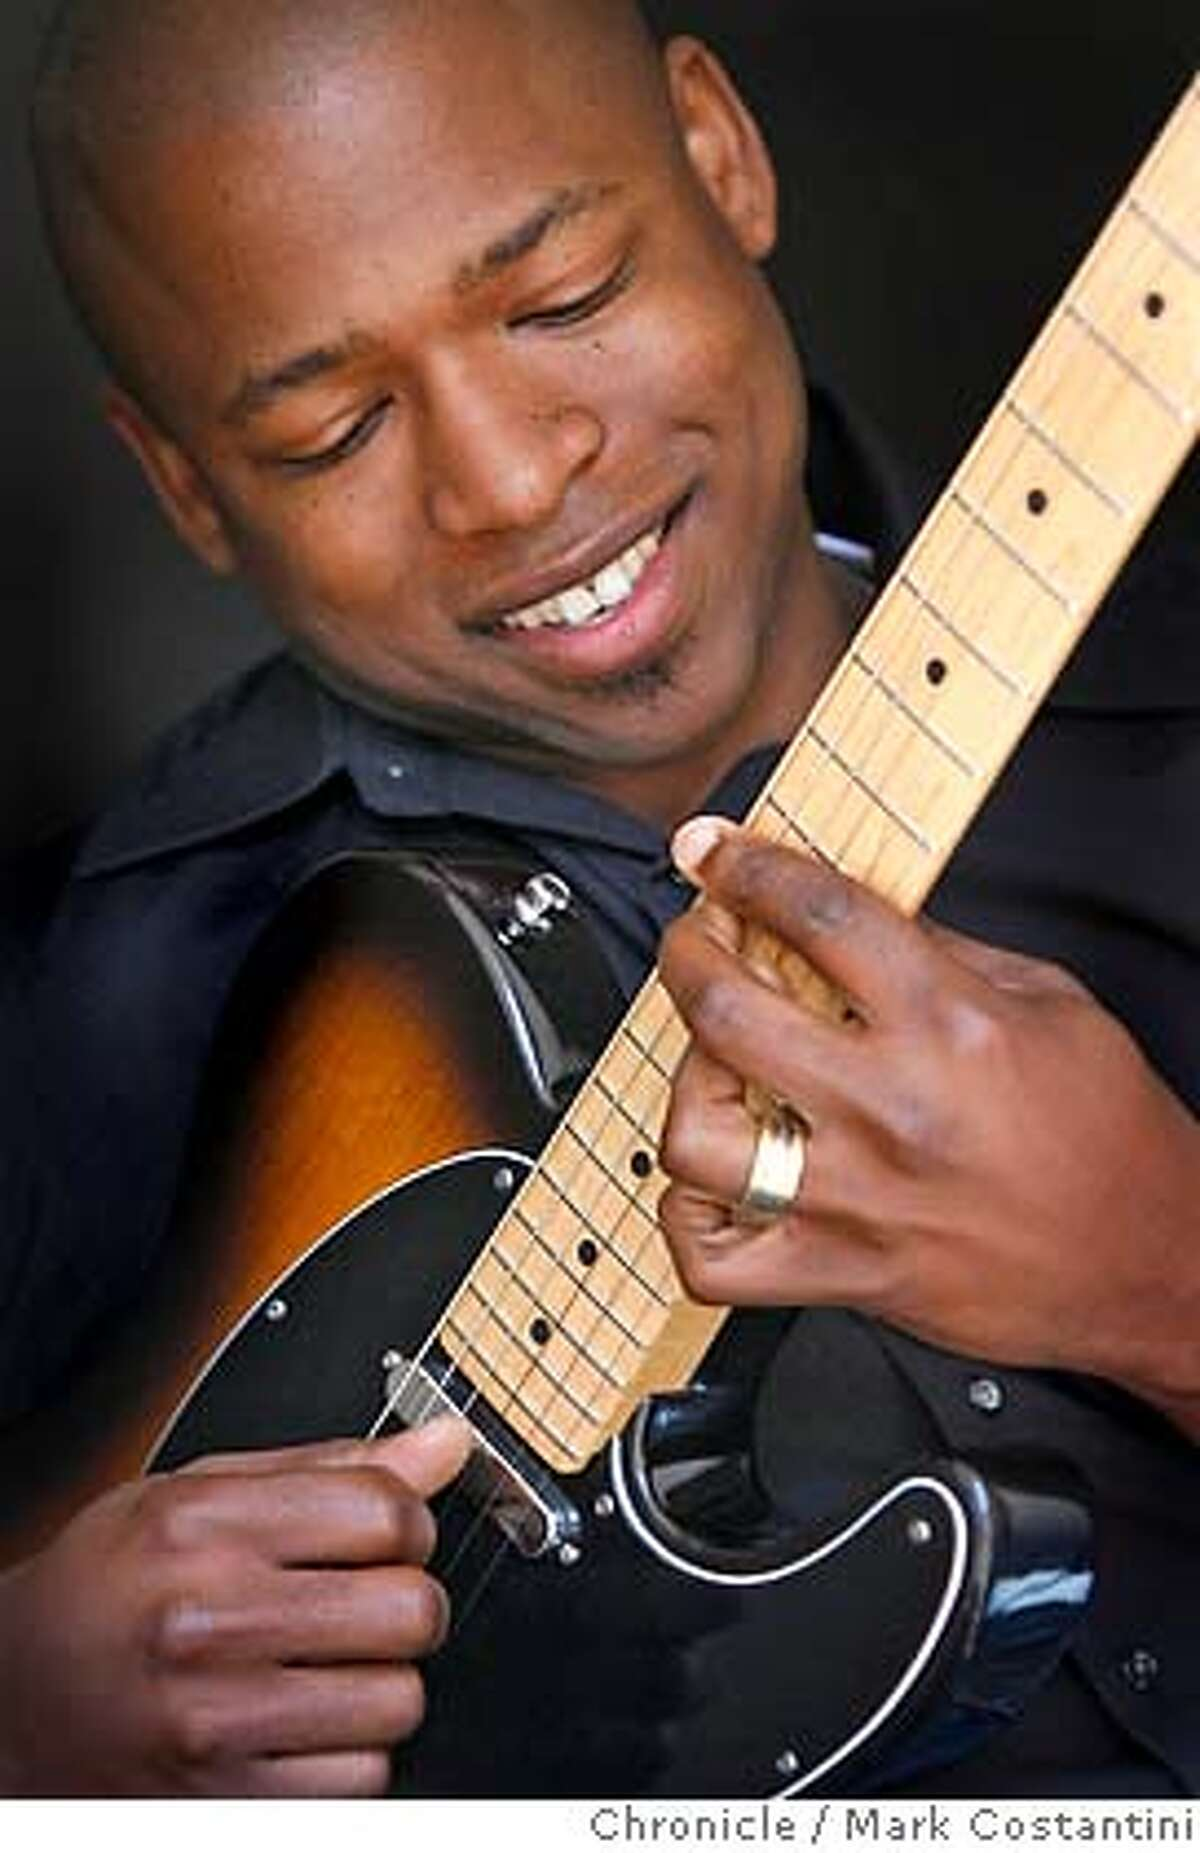 Profile of guitarist Terrence Brewer, who will perform at Yoshi's on 3/20. He's pictured her at his home in Alameda. photo taken on 3/14/07 ( Mark Costantini / The Chronicle ) Terrence Brewer (cq) MANDATORY CREDIT FOR PHOTOGRAPHER AND SAN FRANCISCO CHRONICLE/NO SALES-MAGS OUT